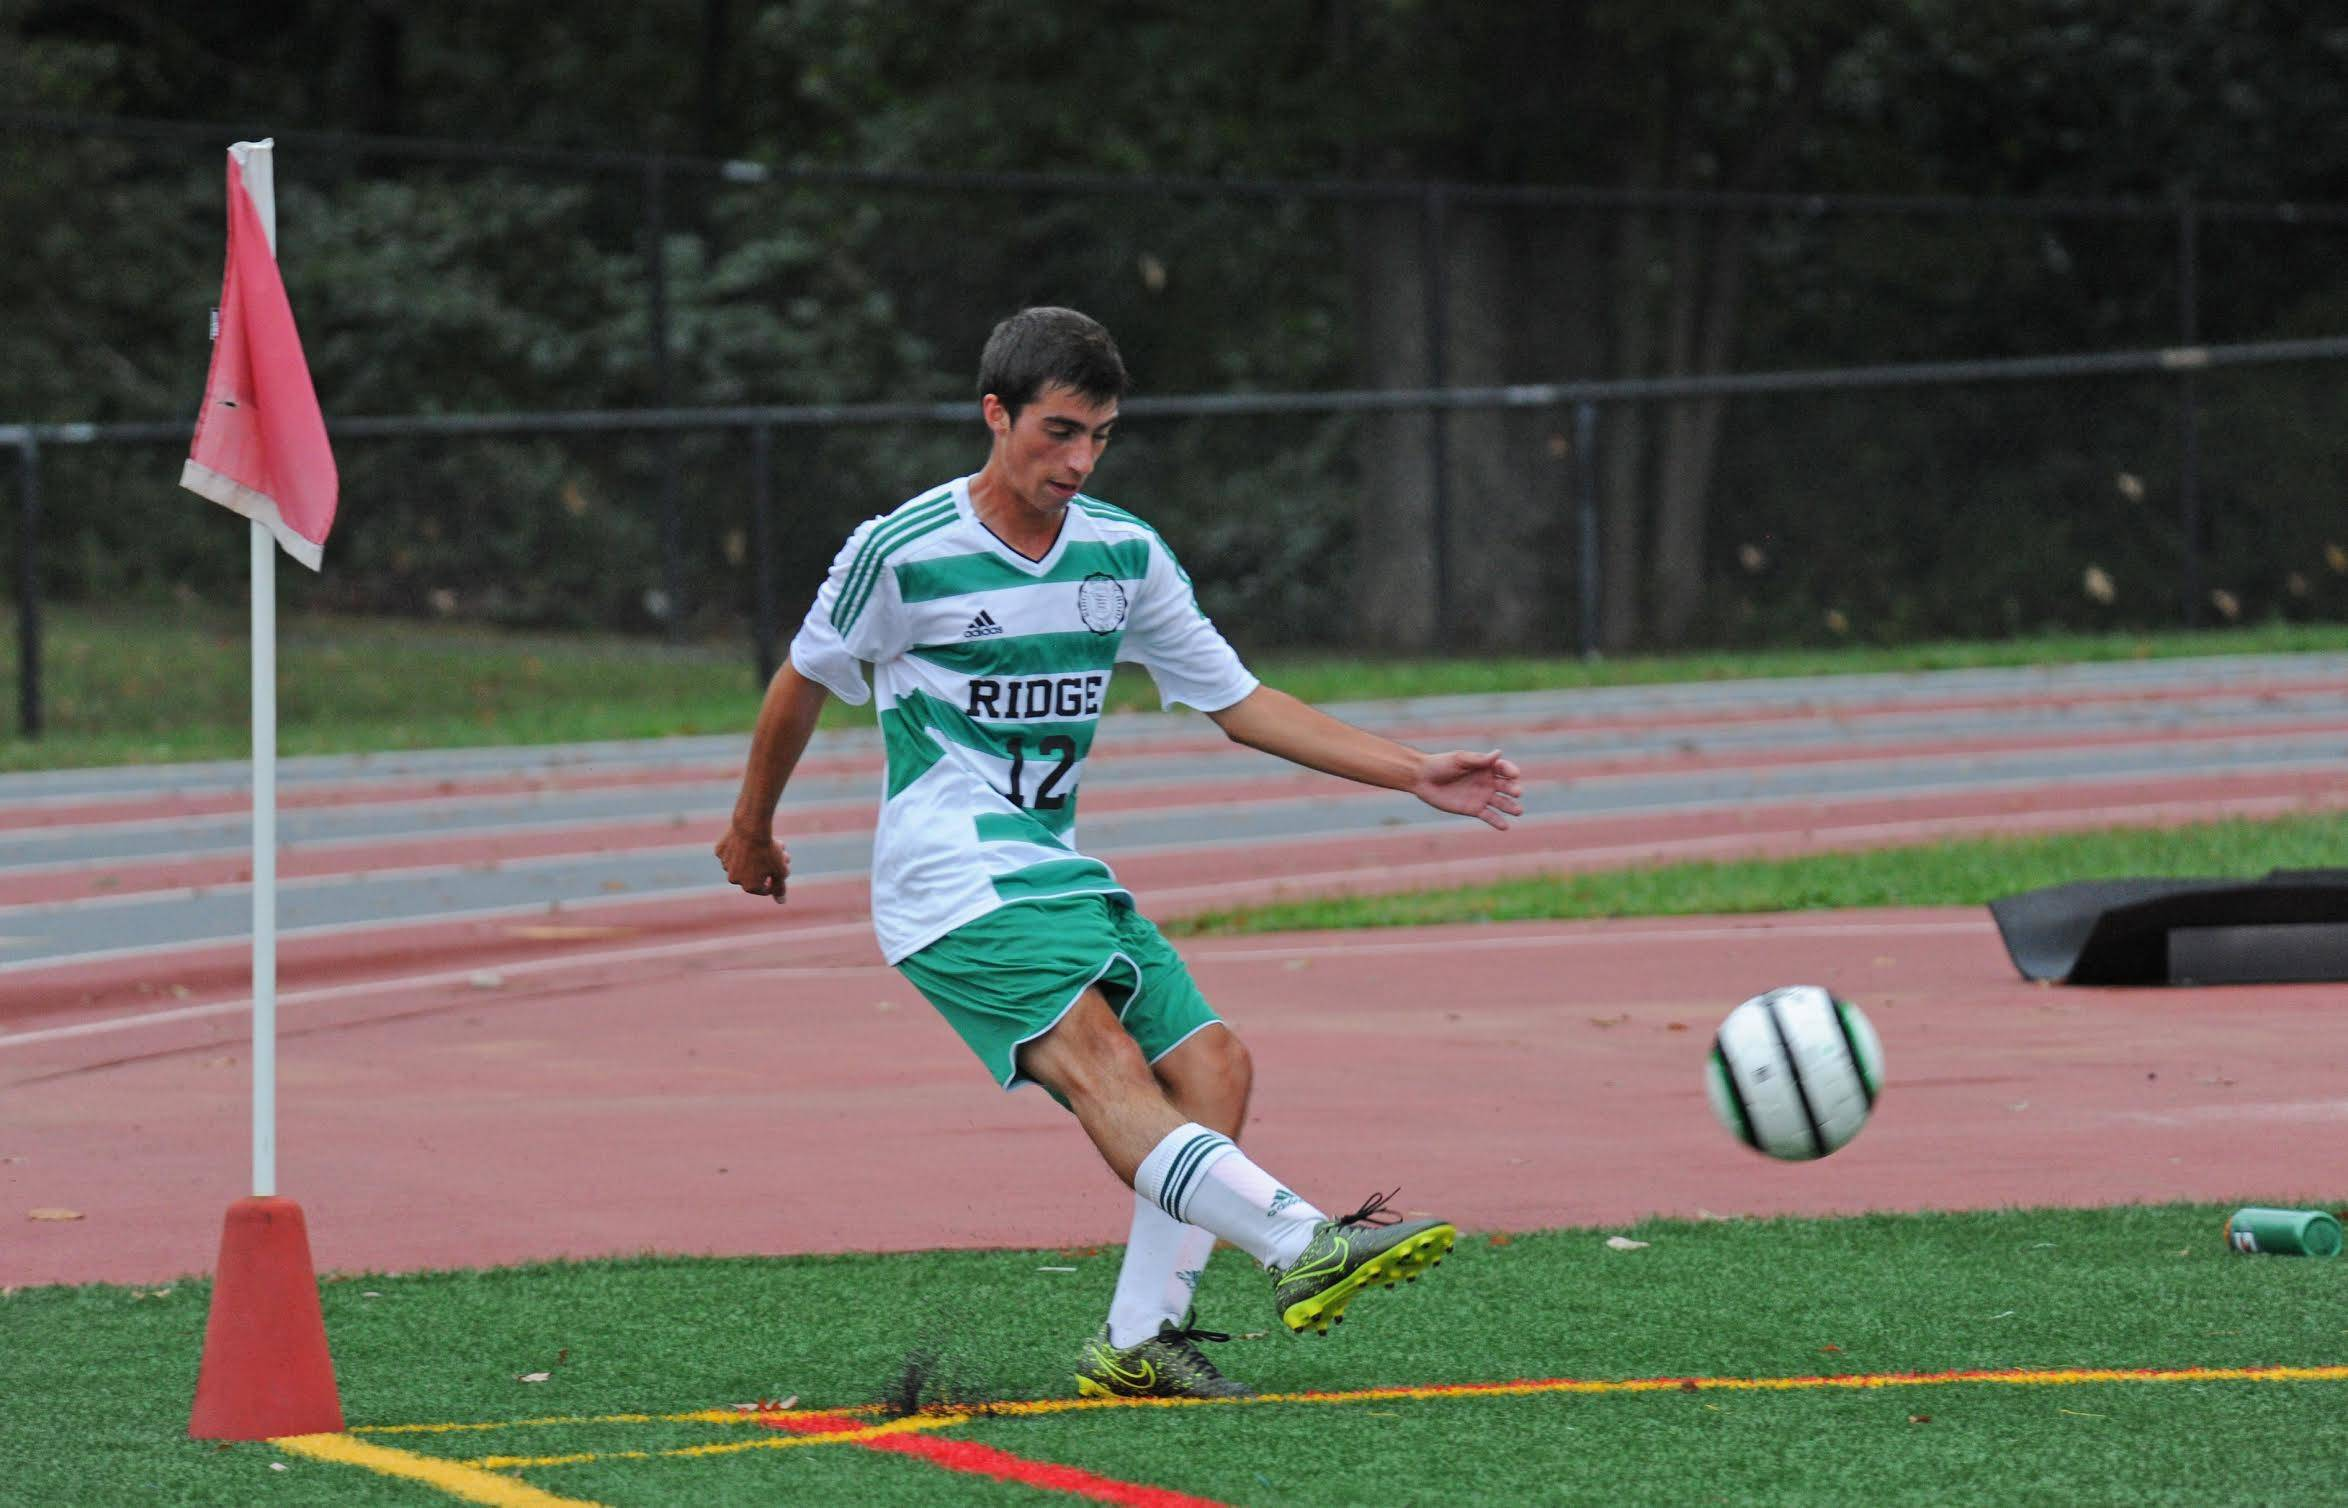 essays about midnight soccer Ivy coach college admissions blog way to tell it like it is, ivy coach - the dartmouth college admission essays april 28, 2011 sports is a fertile ground for trite.